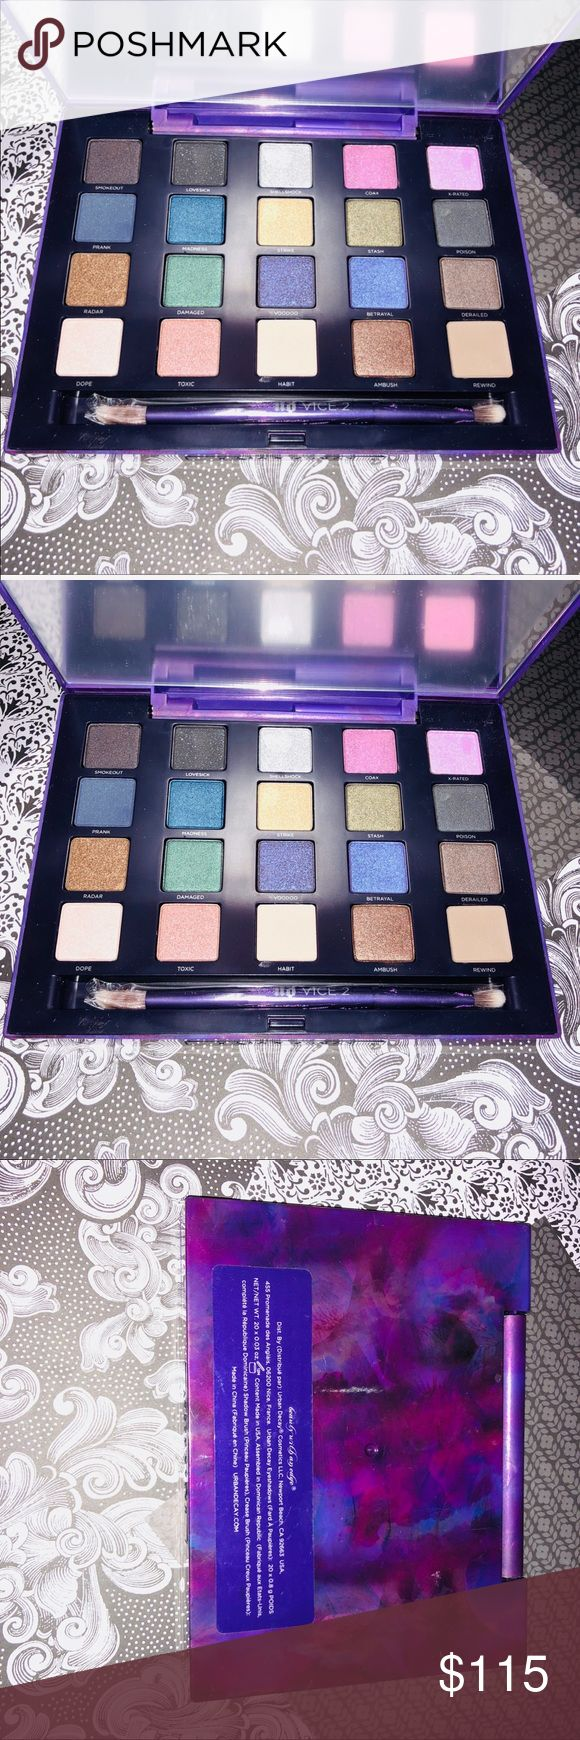 NWT URBAN DECAY VICE 2 PALETTE- rare collectors Pc NWT URBAN DECAY VICE 2 PALETTE- rare collectors Pc. This is never used or swatched, brand spankin new! I am collecting every UD palette ever made and happened to collect an extra one of these, very hard to find and even harder to find new. Great product and a must have for urban decay lovers alike. Feel free to ask questions, thanks! XoXo LNJ Cosmetics Urban Decay Makeup Eyeshadow